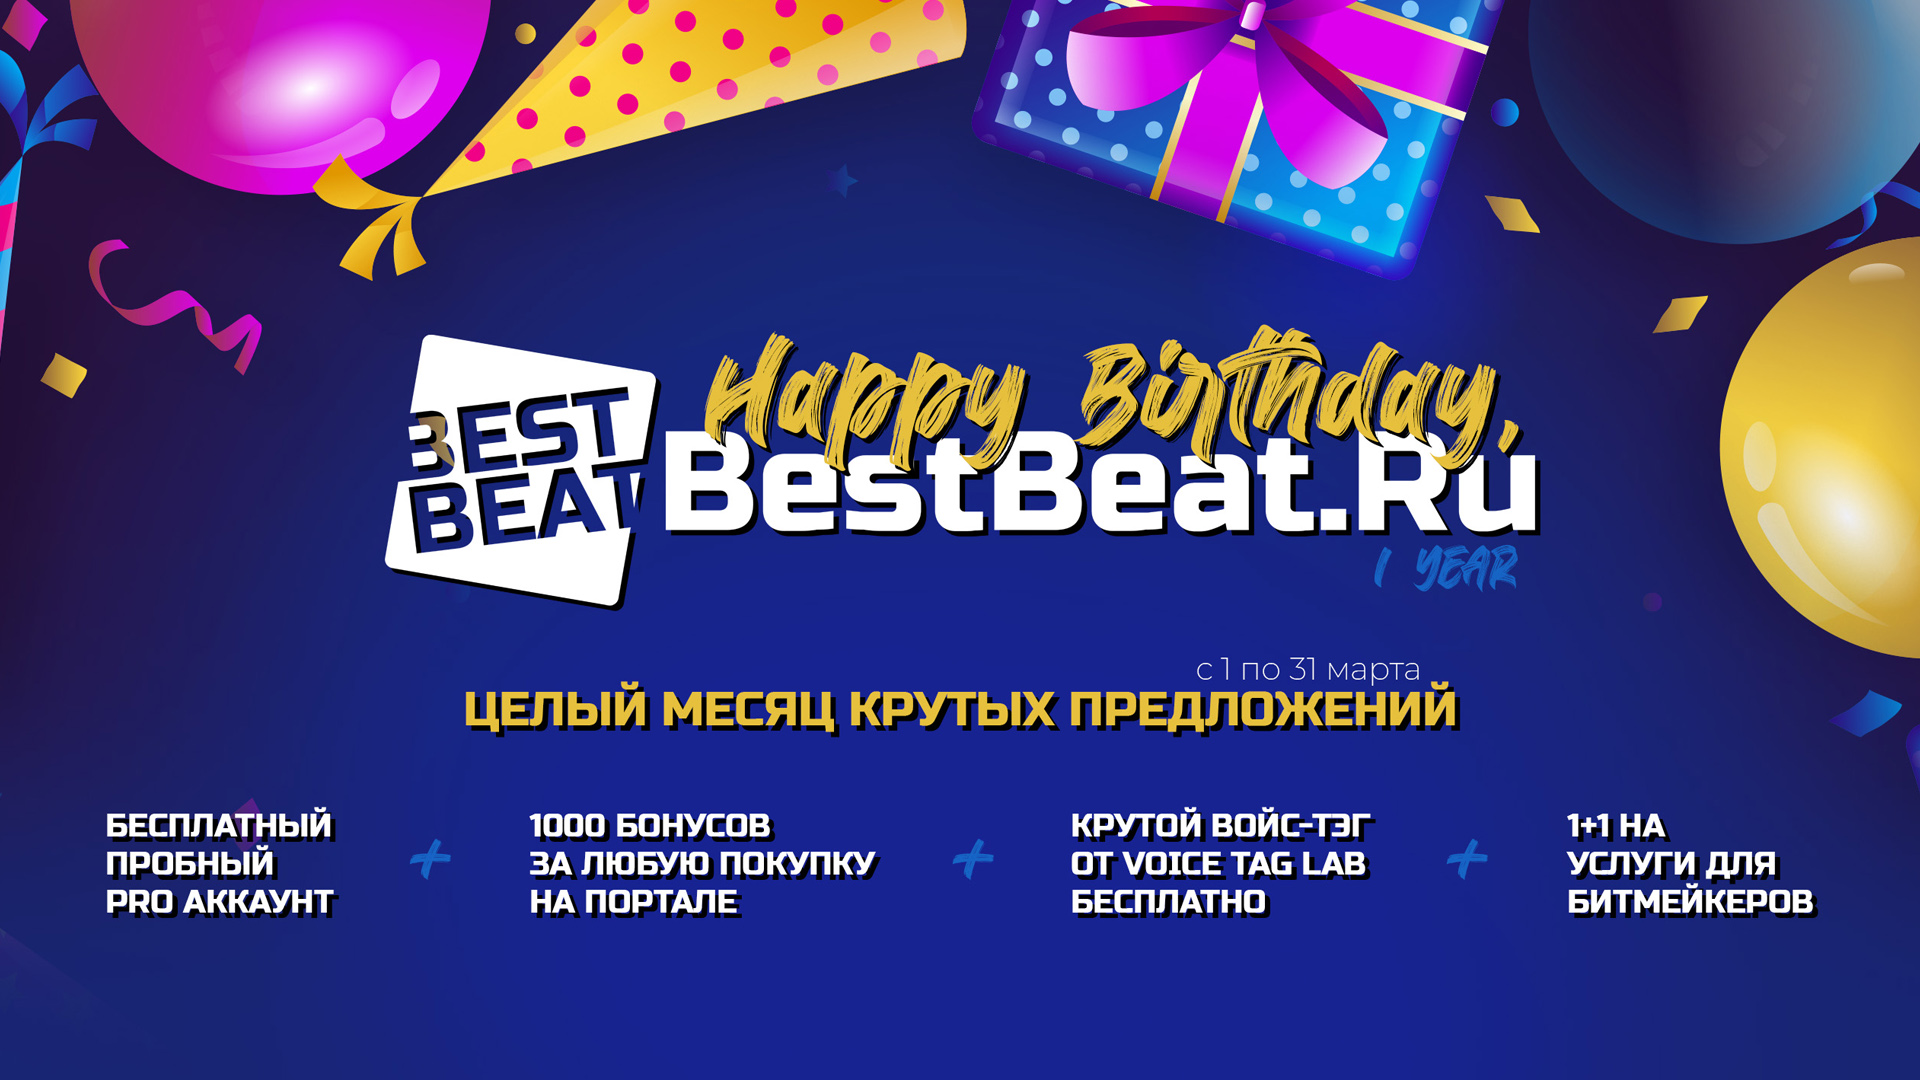 Happy Birthday, BestBeat.Ru!